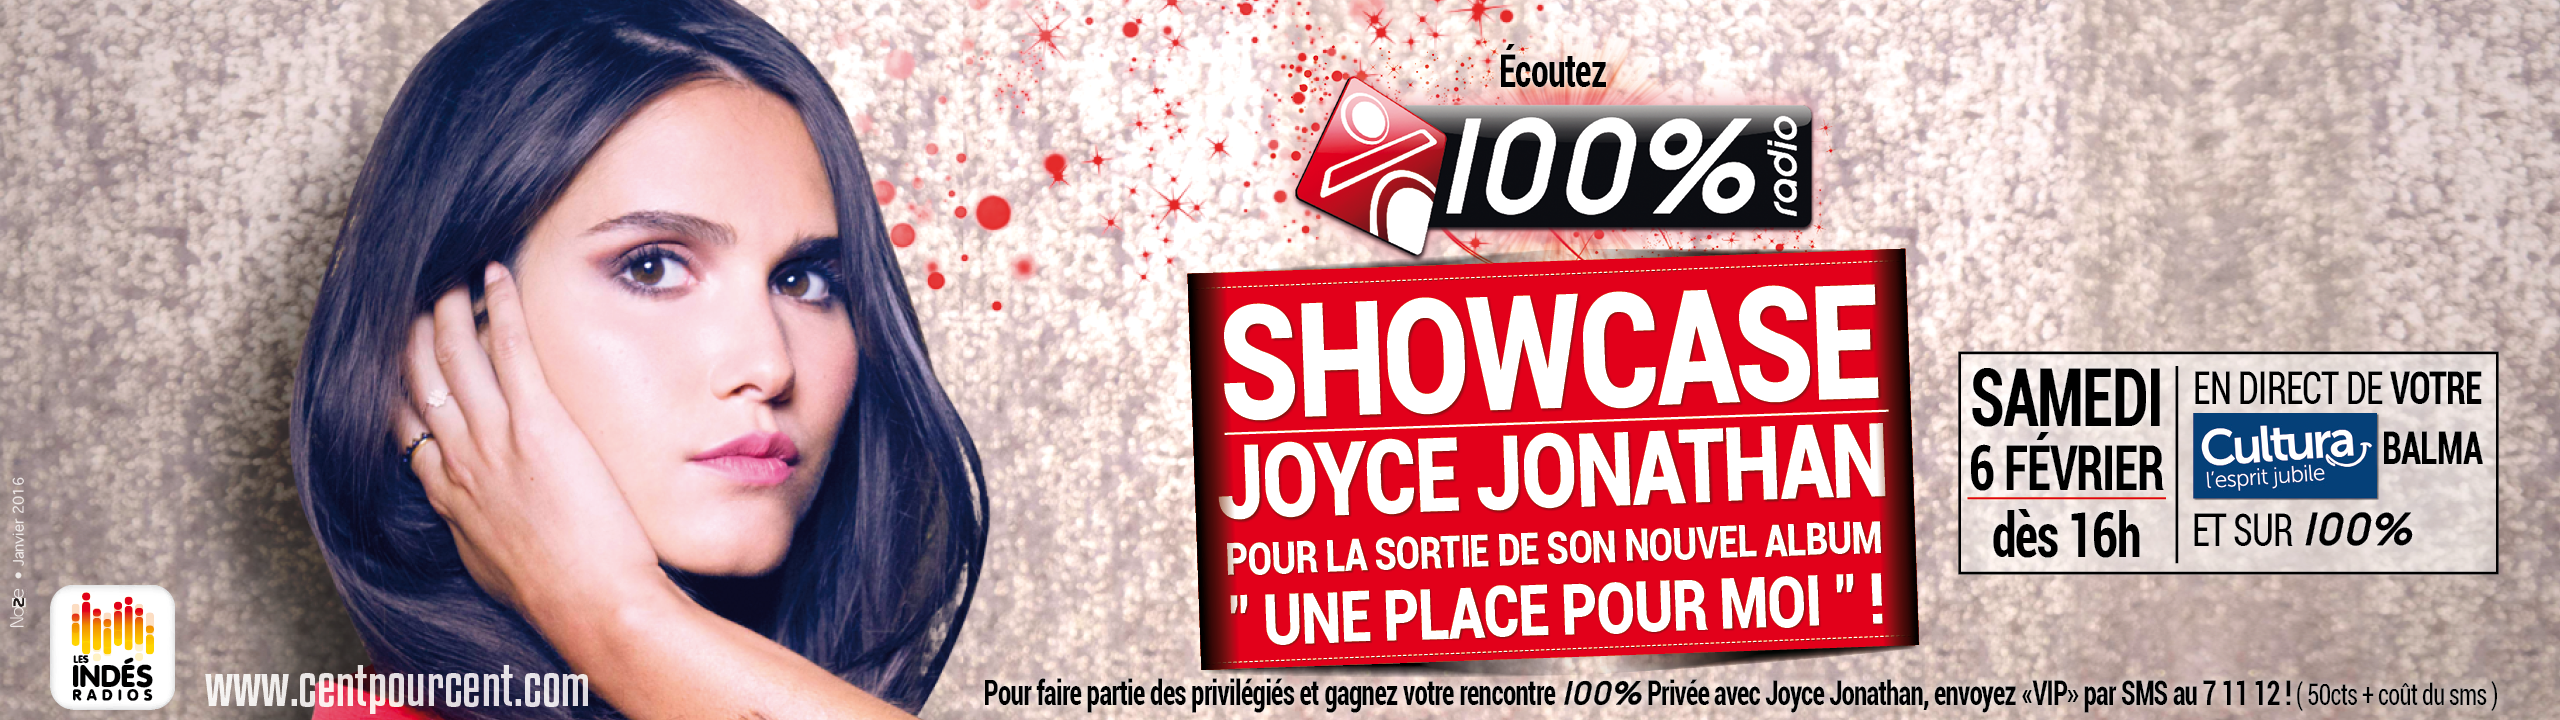 100% retransmet le showcase de Joyce Jonathan